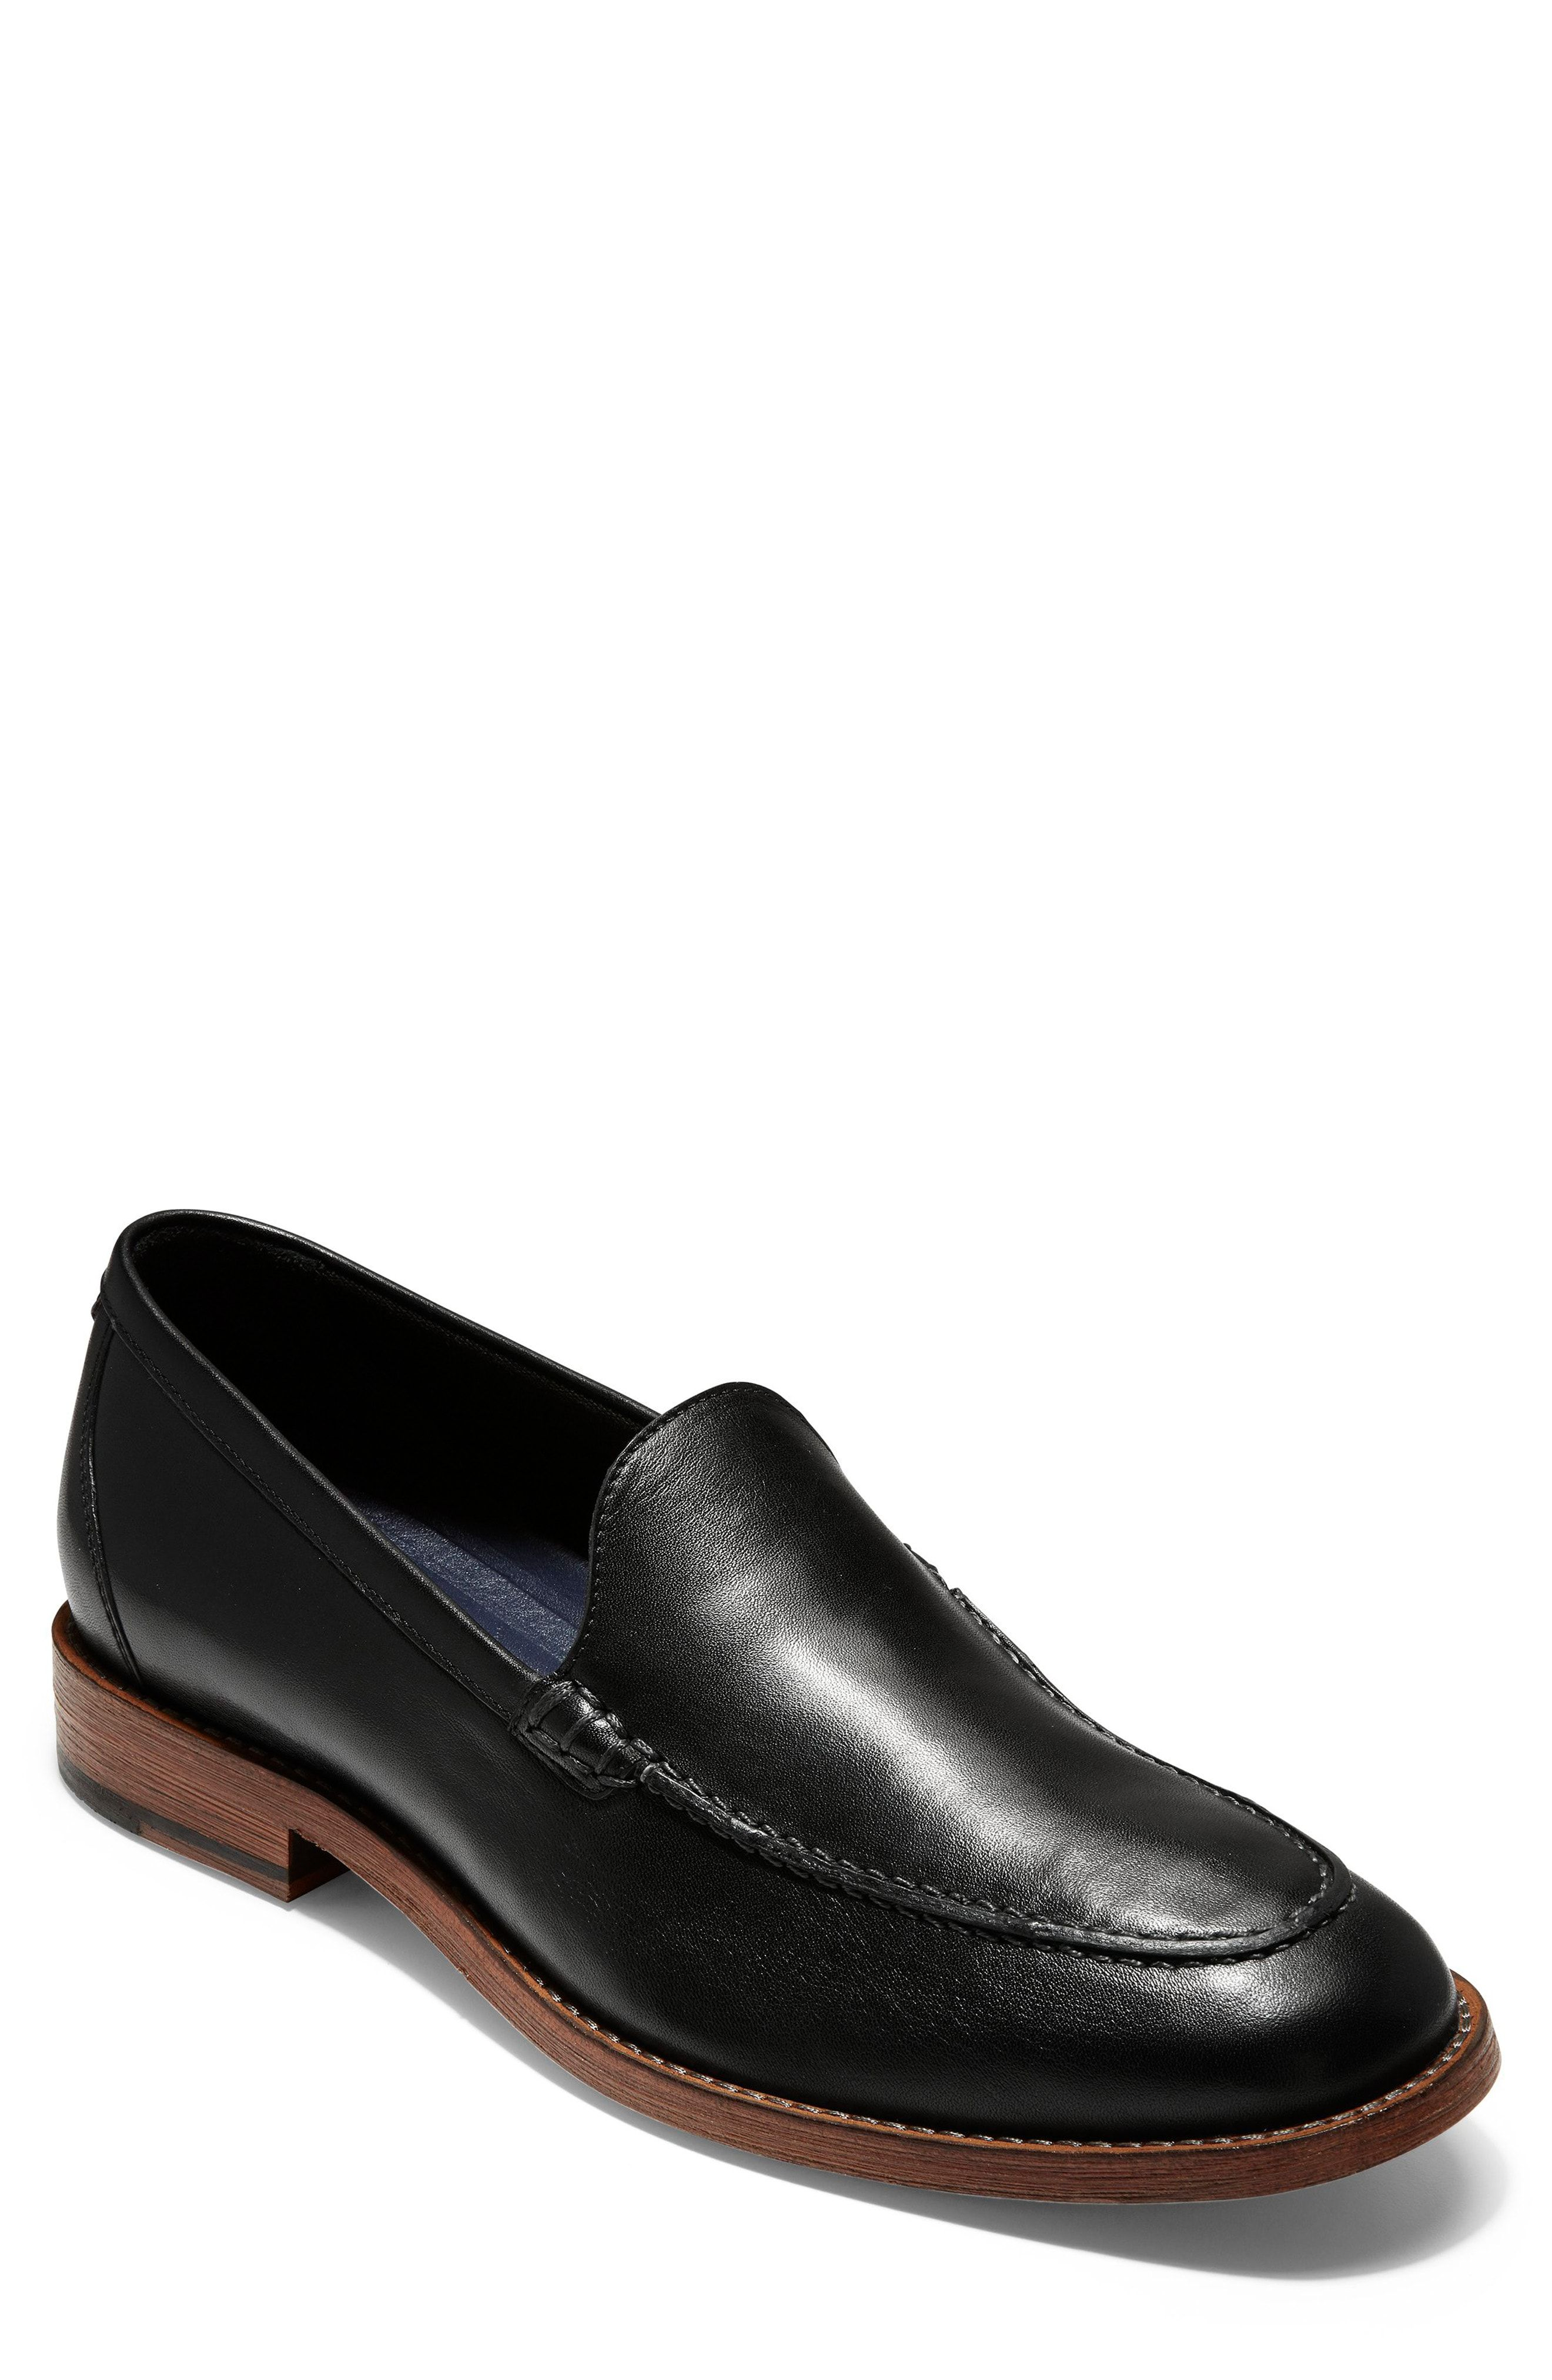 0f39993fbae COLE HAAN FEATHERCRAFT GRAND VENETIAN LOAFER.  colehaan  shoes ...